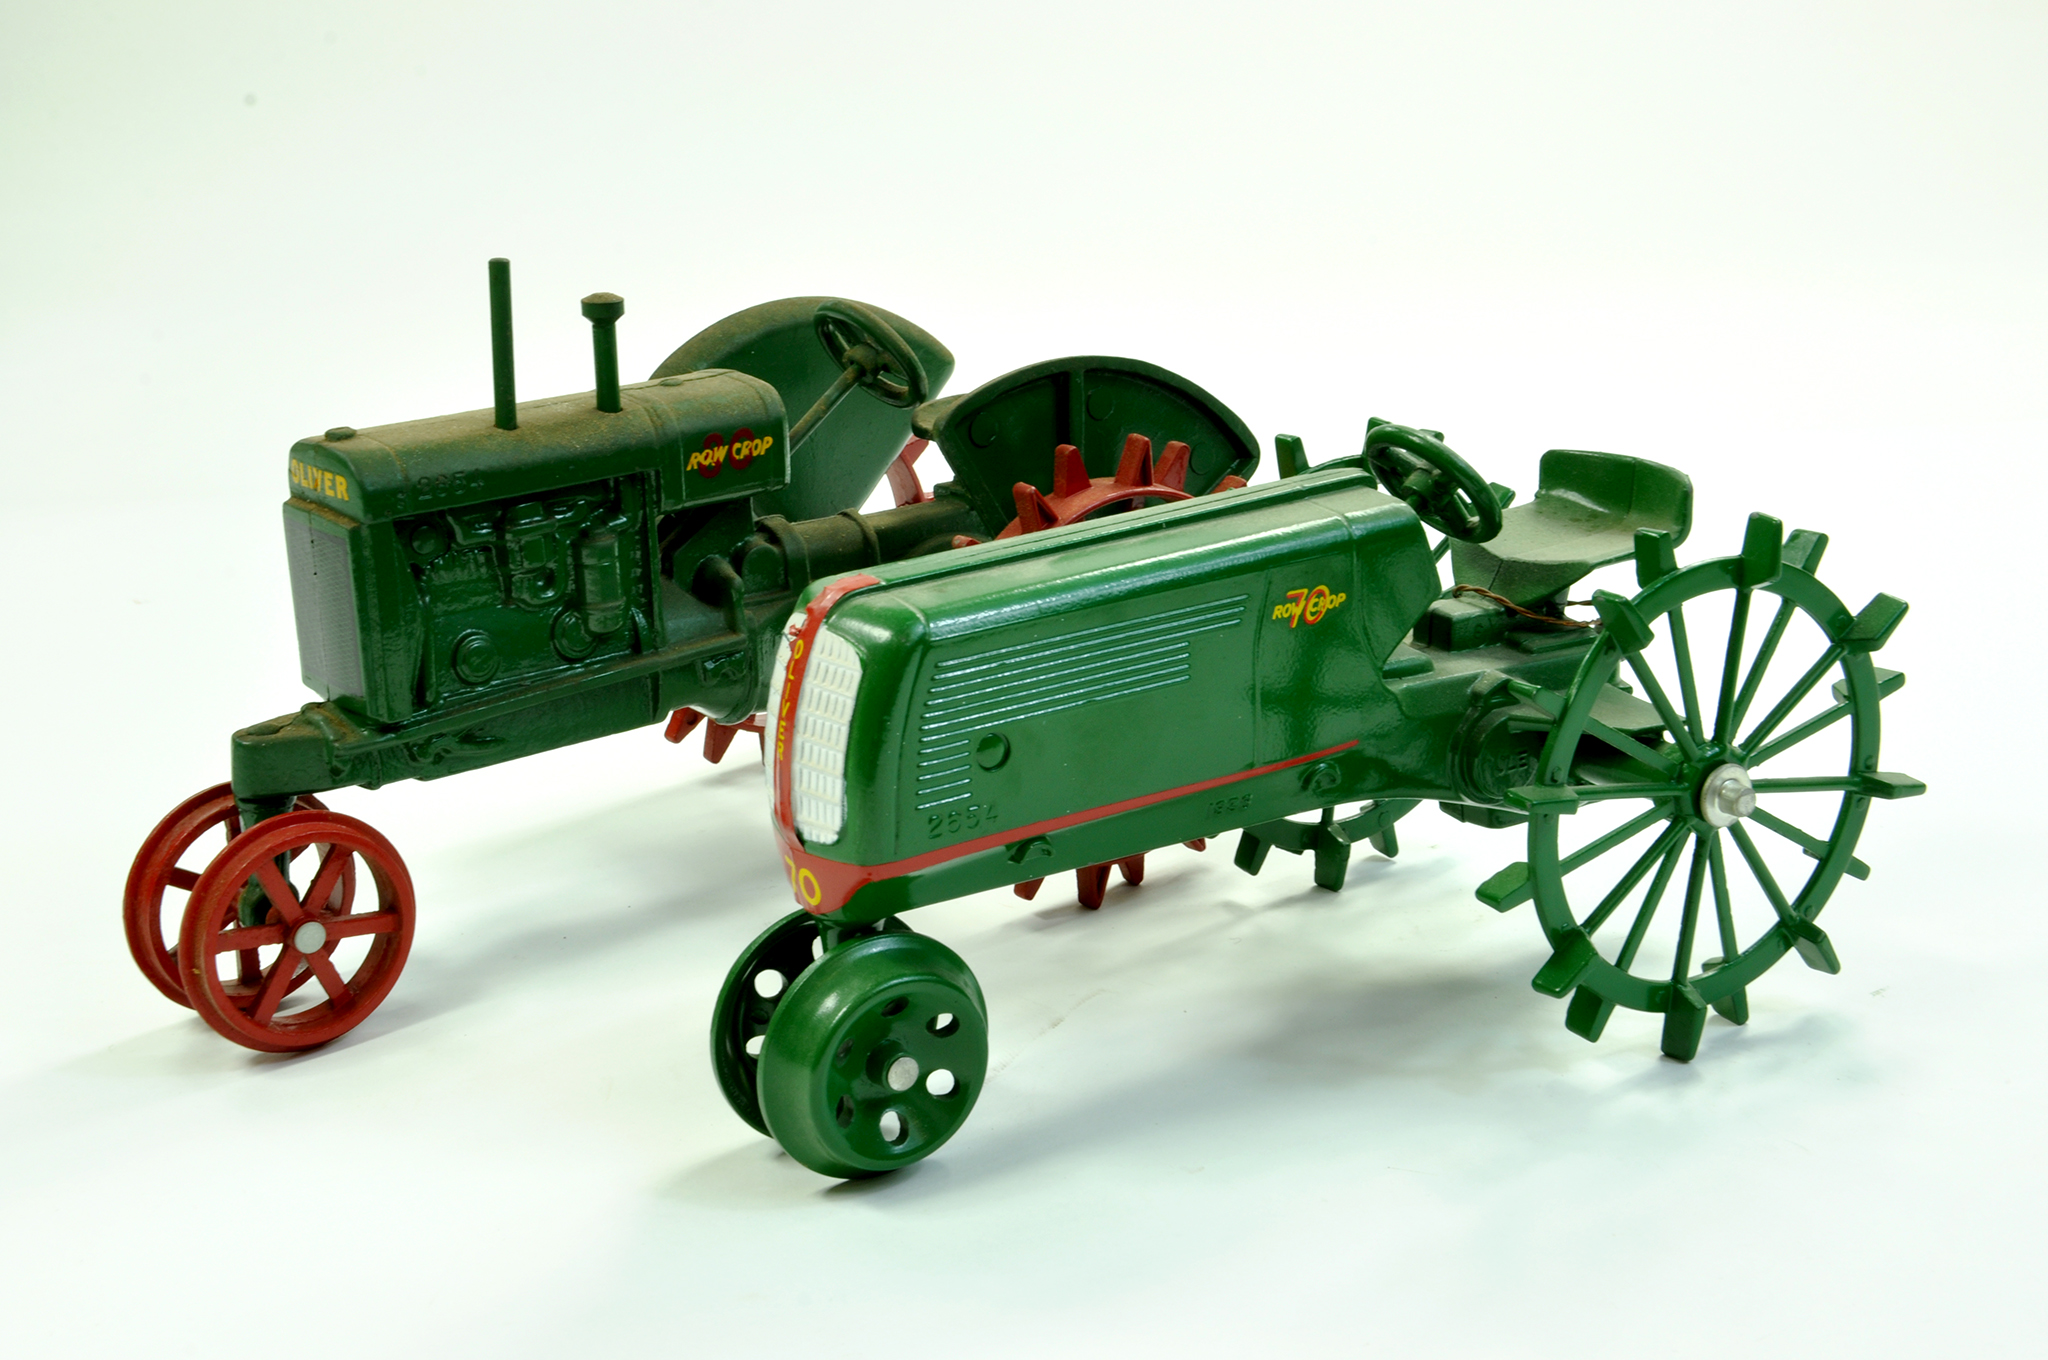 Lot 13 - Scale Models 1/16 diecast duo of Oliver Tractor issues on Row Crops. Generally excellent albeit